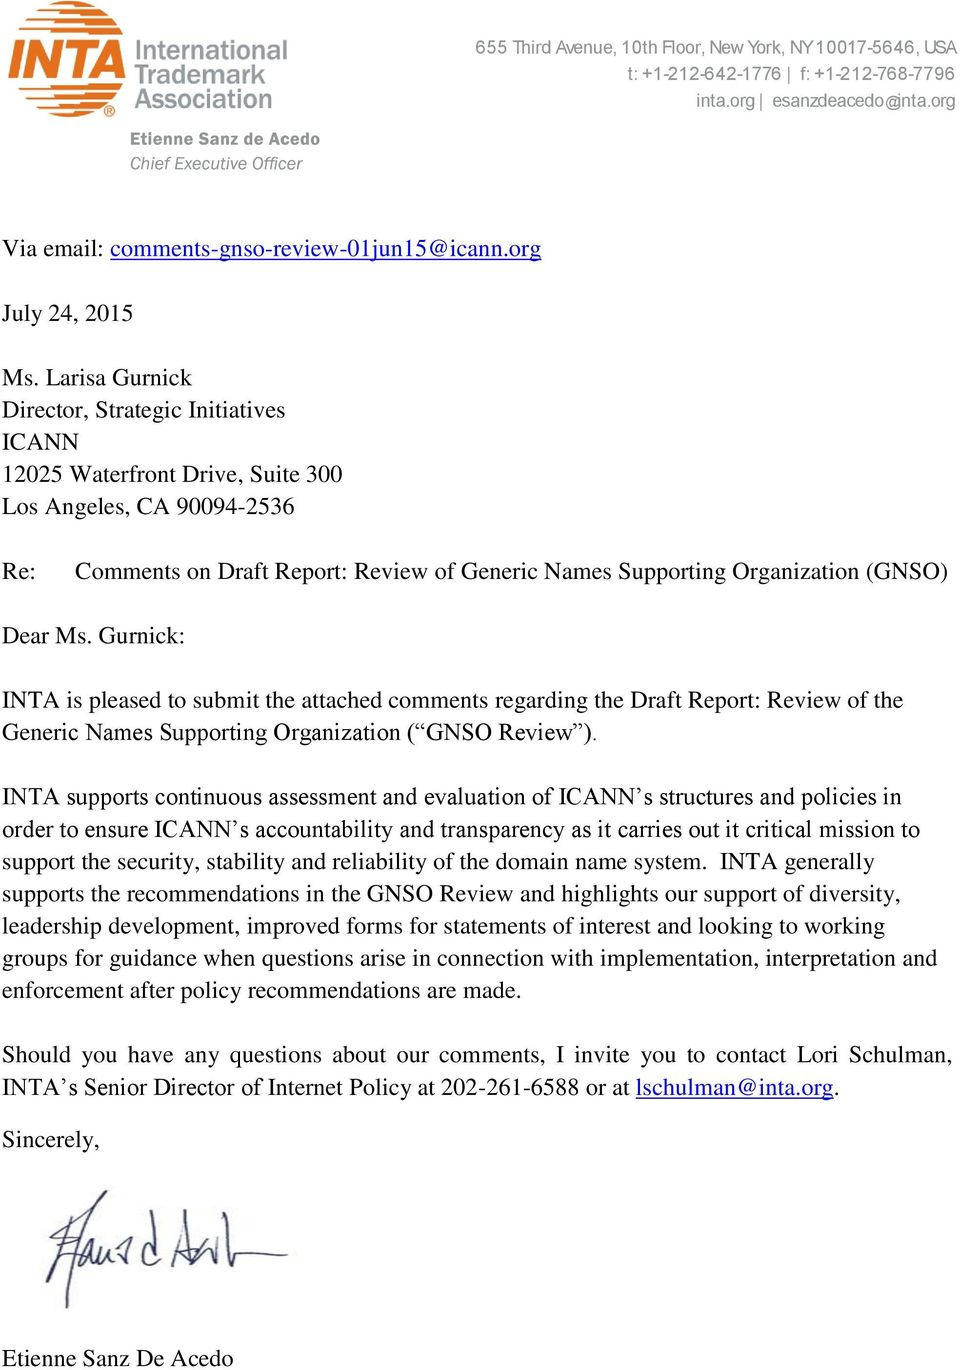 Dear Ms. Gurnick: INTA is pleased to submit the attached comments regarding the Draft Report: Review of the Generic Names Supporting Organization ( GNSO Review ).